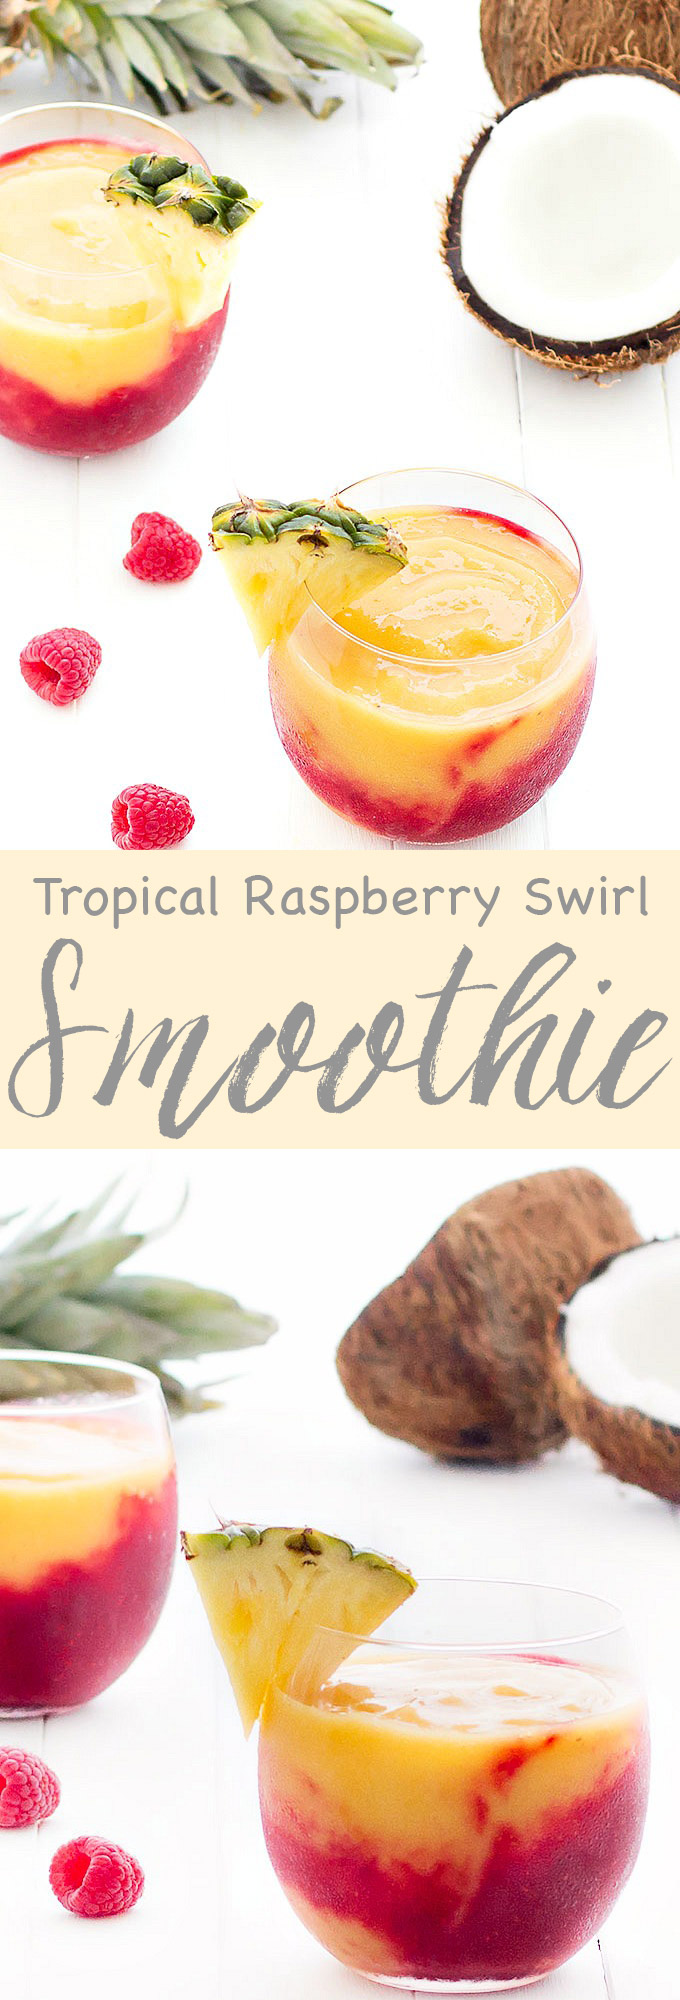 A creamy, fresh and delicious tropical raspberry swirl smoothie, great for breakfast on-the-go or as a pre-workout snack. Vegan, gluten-free